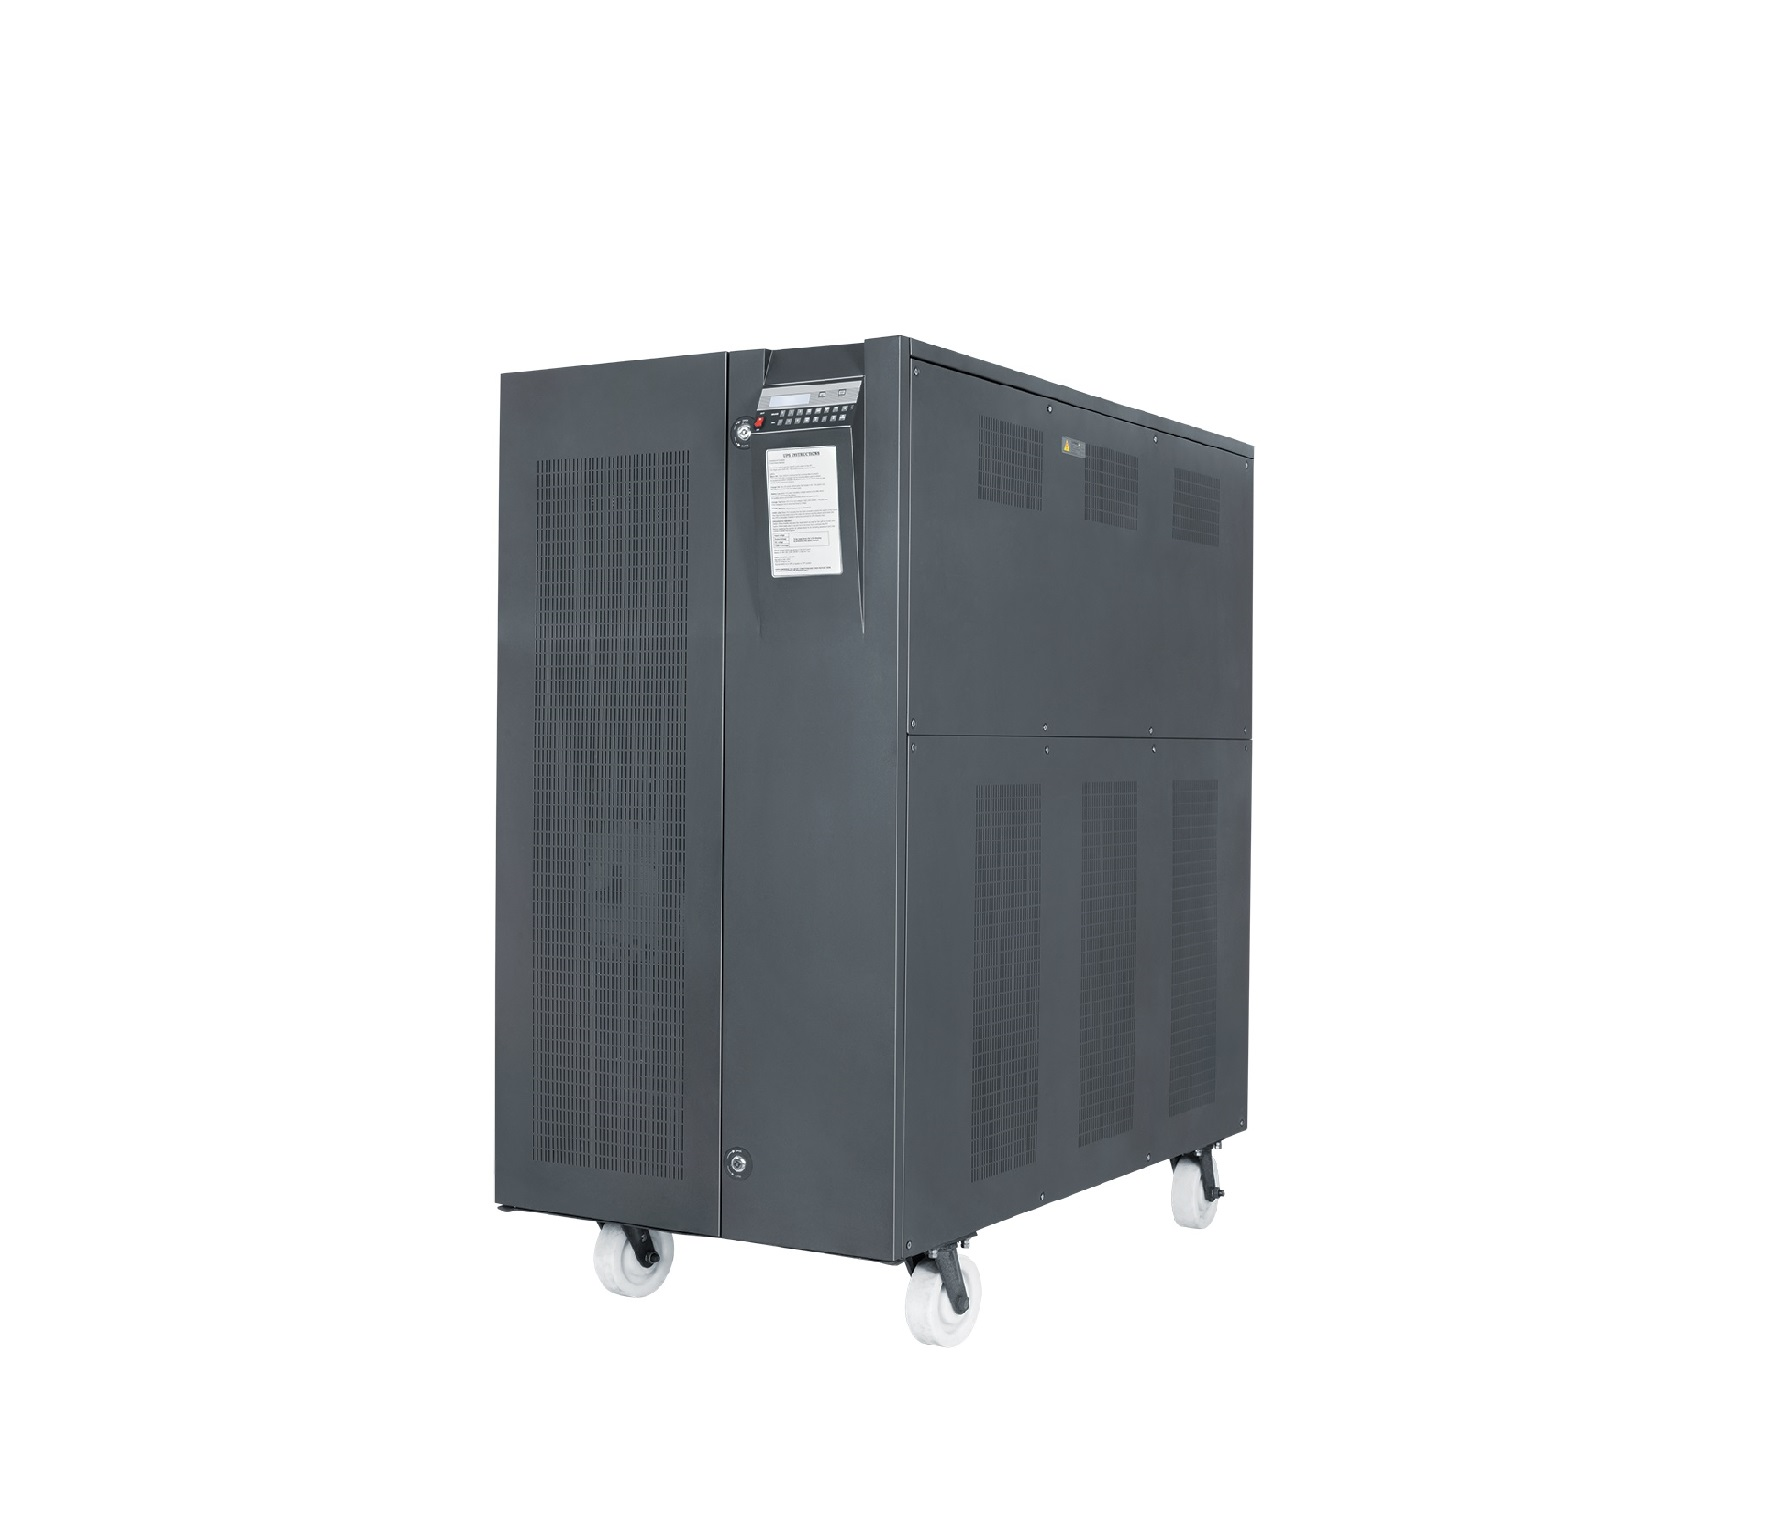 PFC-301 Online UPS   Autoronica   3 Phase input and 1 Phase output Online UPS manufacturer in Panchkula, Single Phase UPS dealer in Panchkula, 3 Phase output Online UPS manufacturer in Chandigarh, Three Phase UPS d - GLK3414